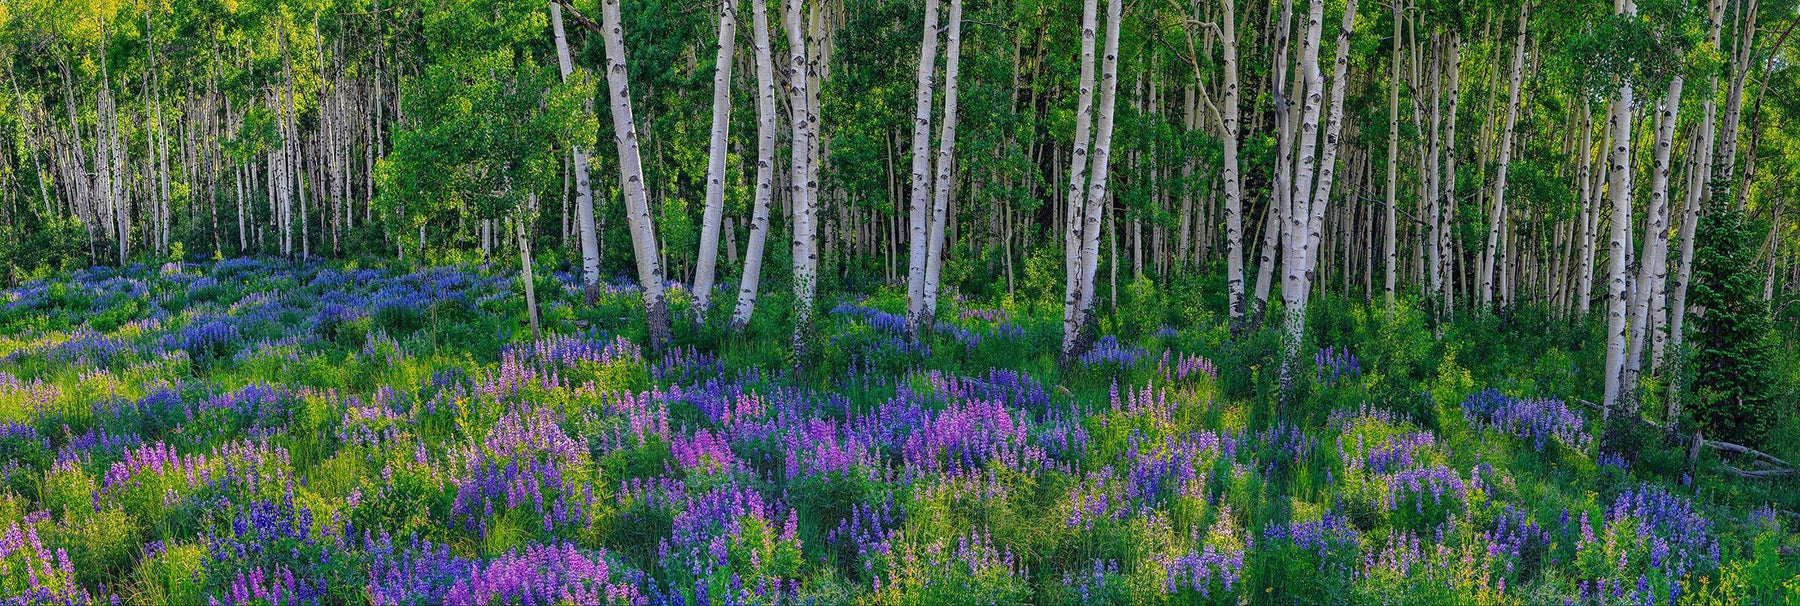 A field of purple wildflowers in front of a white birch tree forest in Aspen, Colorado